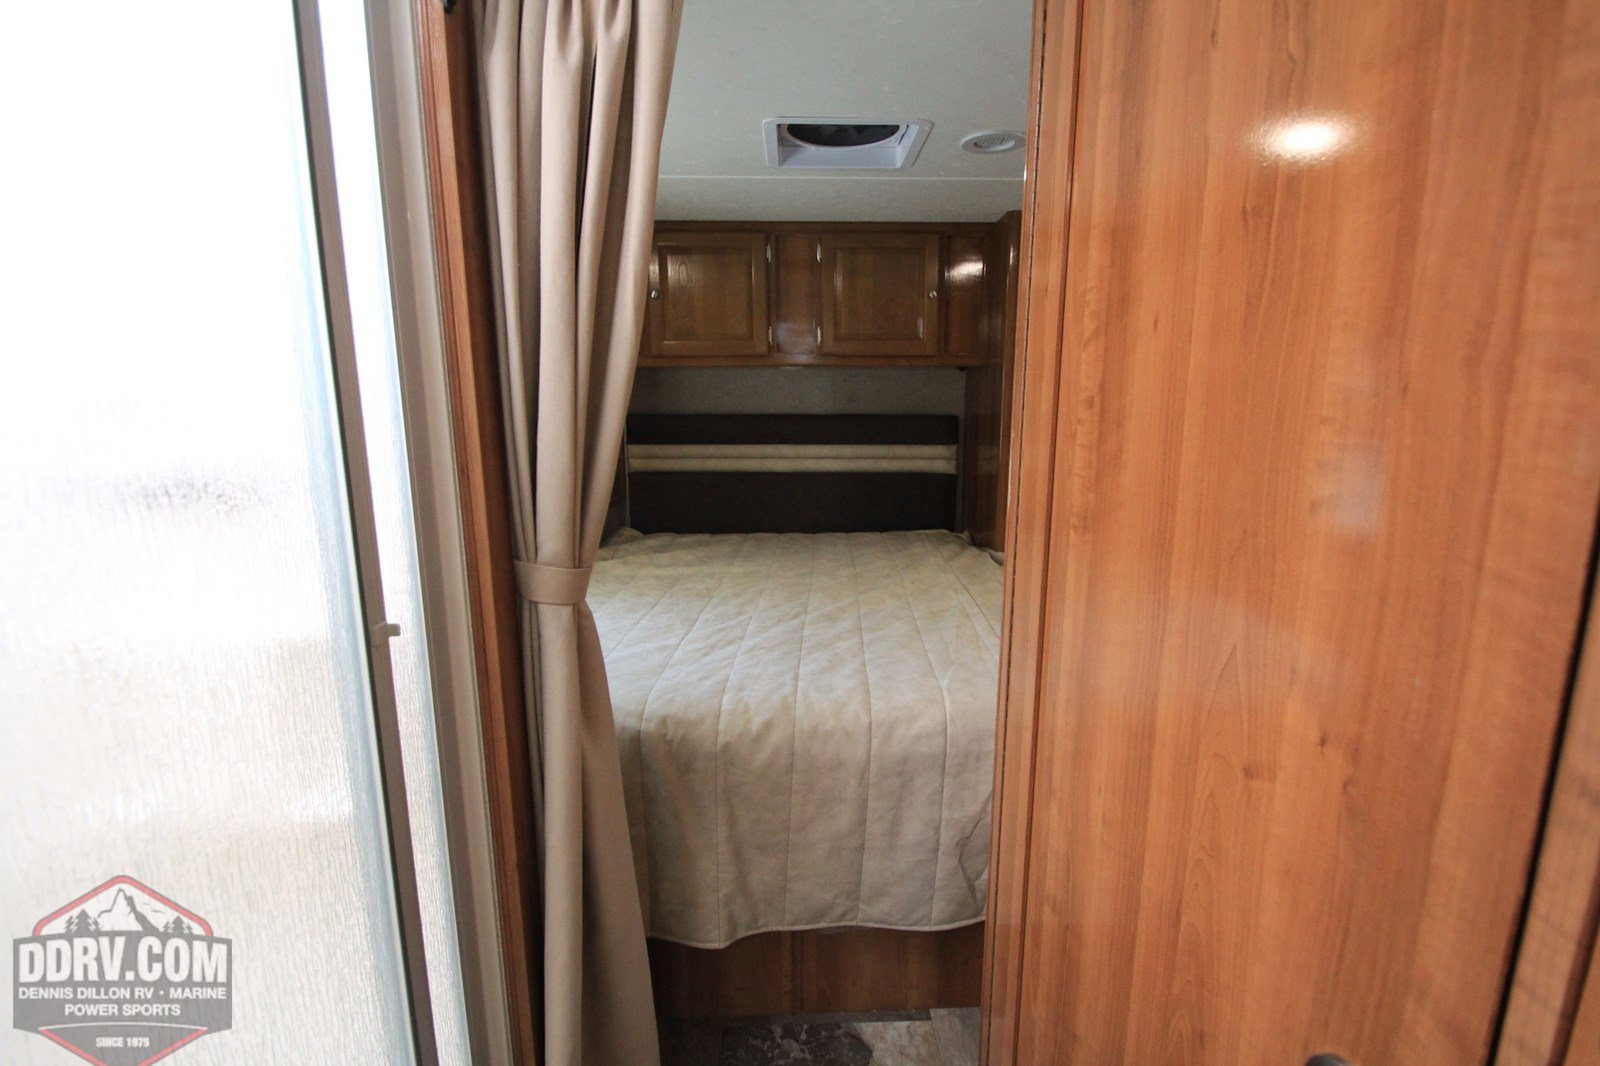 A Max Hardwood Floors Boise Of New 2019 Coachmen Leprechaun 319mb Specialty Vehicle In Boise Rk057 with New 2019 Coachmen Leprechaun 319mb Specialty Vehicle In Boise Rk057 Dennis Dillon Rv Marine Powersports